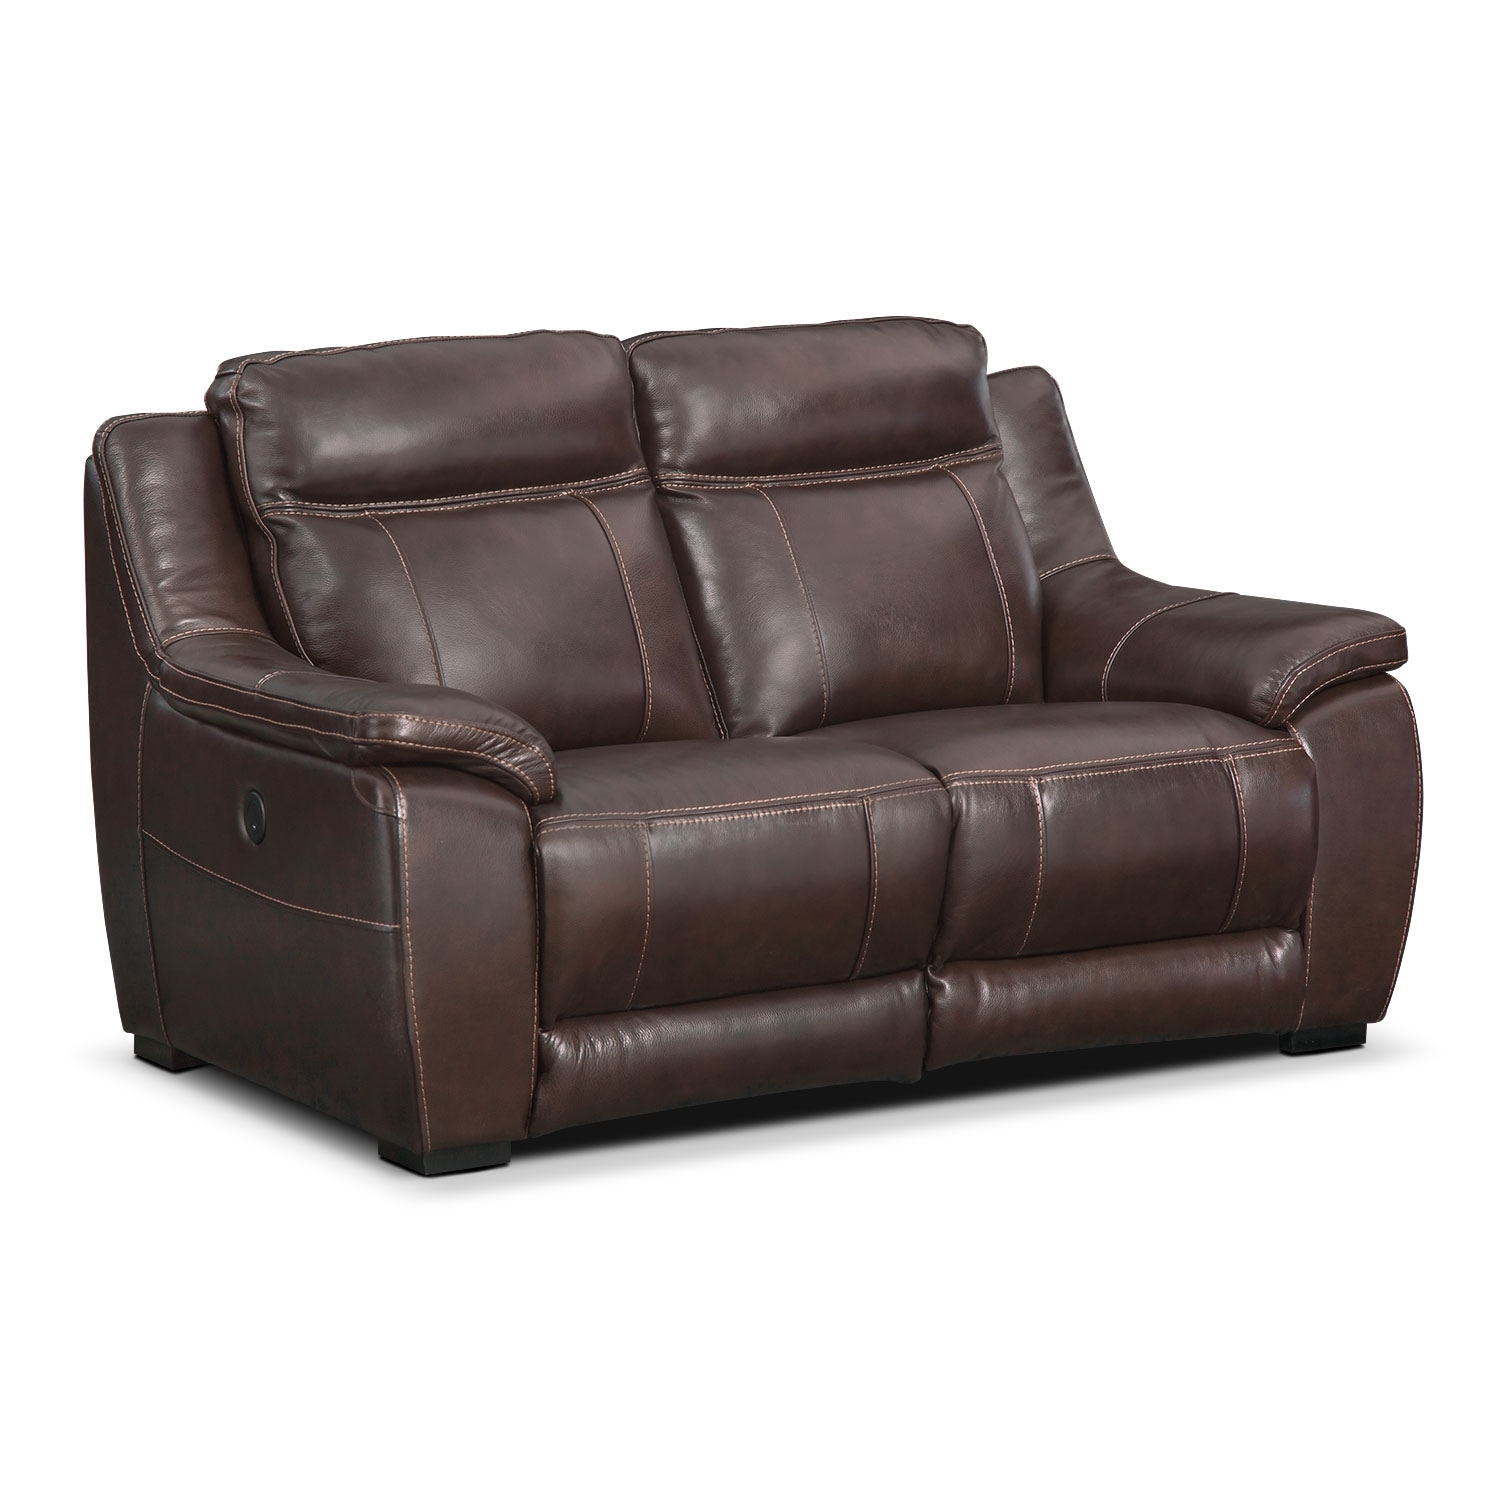 lido power reclining loveseat   brown. Value City Furniture   Cuyahoga Falls  OH 44221